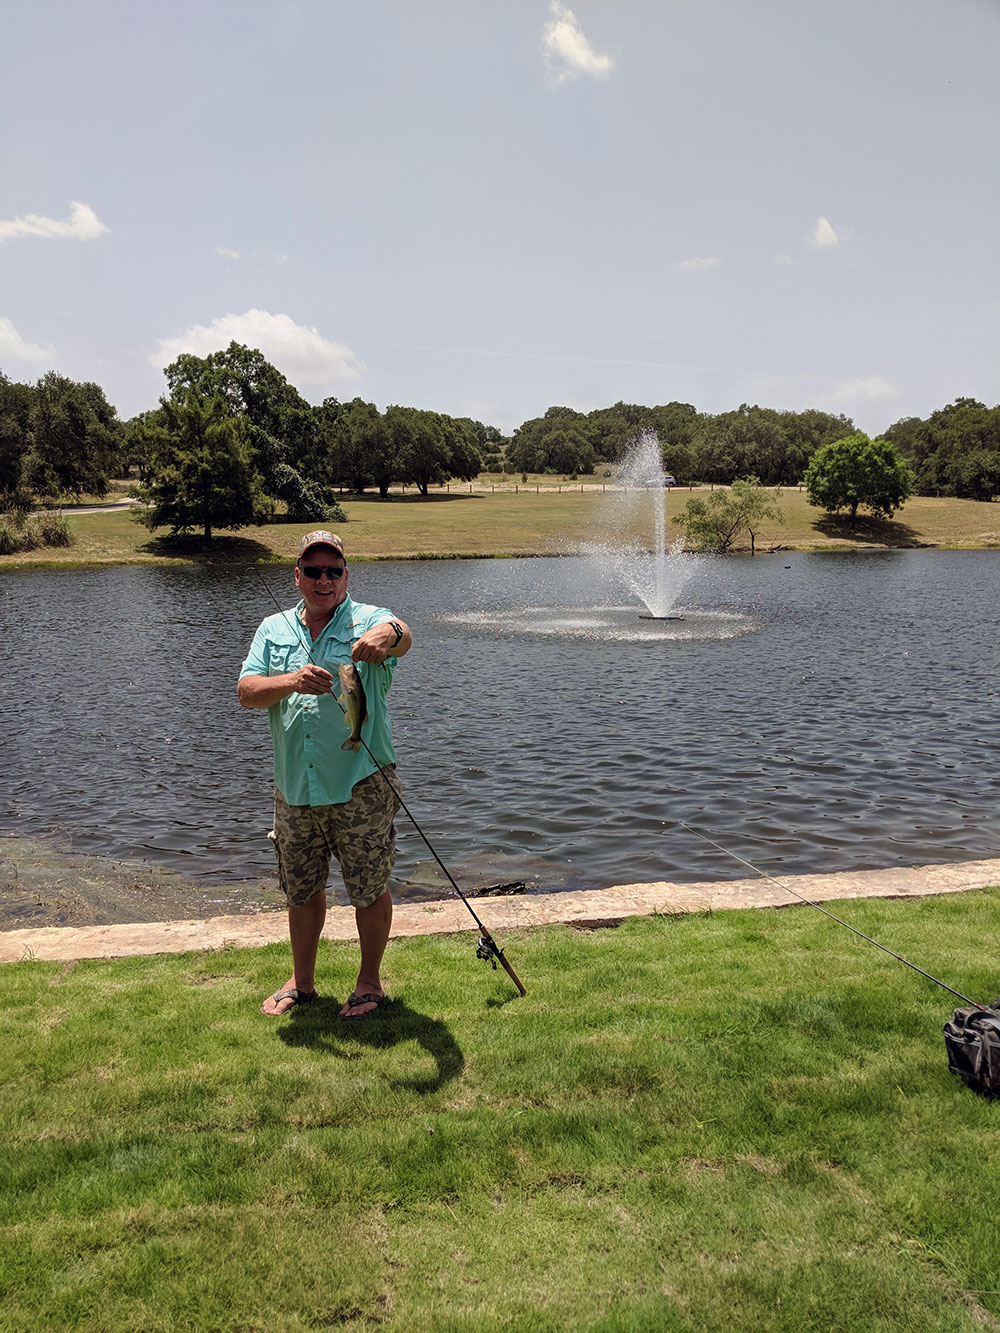 Fisherman holding a fish at the Upper Pond at Garey Park in Georgetown, tX